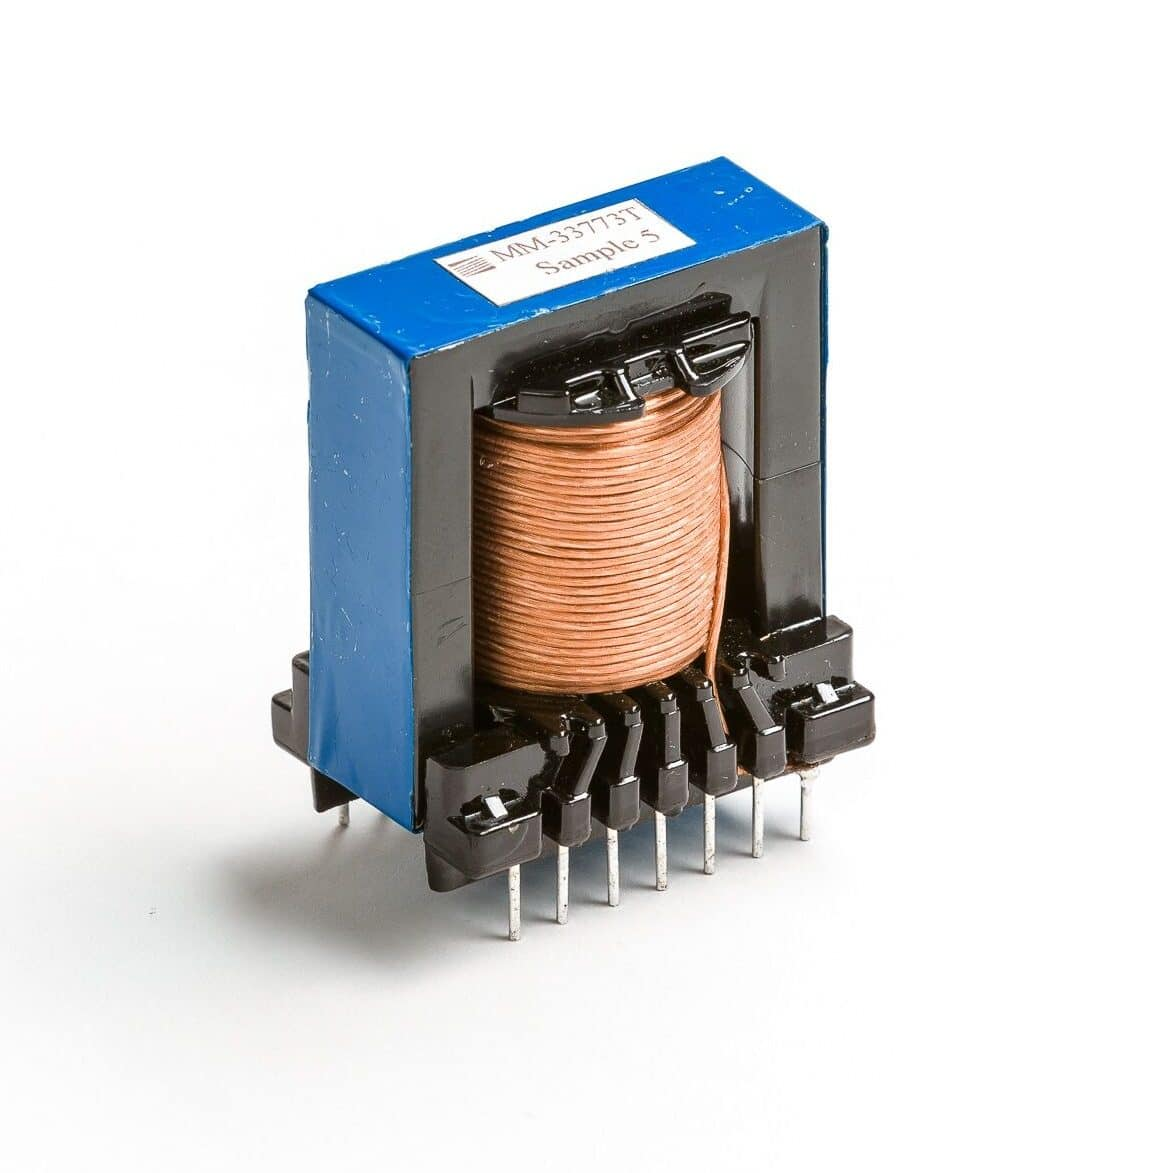 C-Core Output Transformer Electrotechnical Pressboard Metal Silicon Steel Alloy